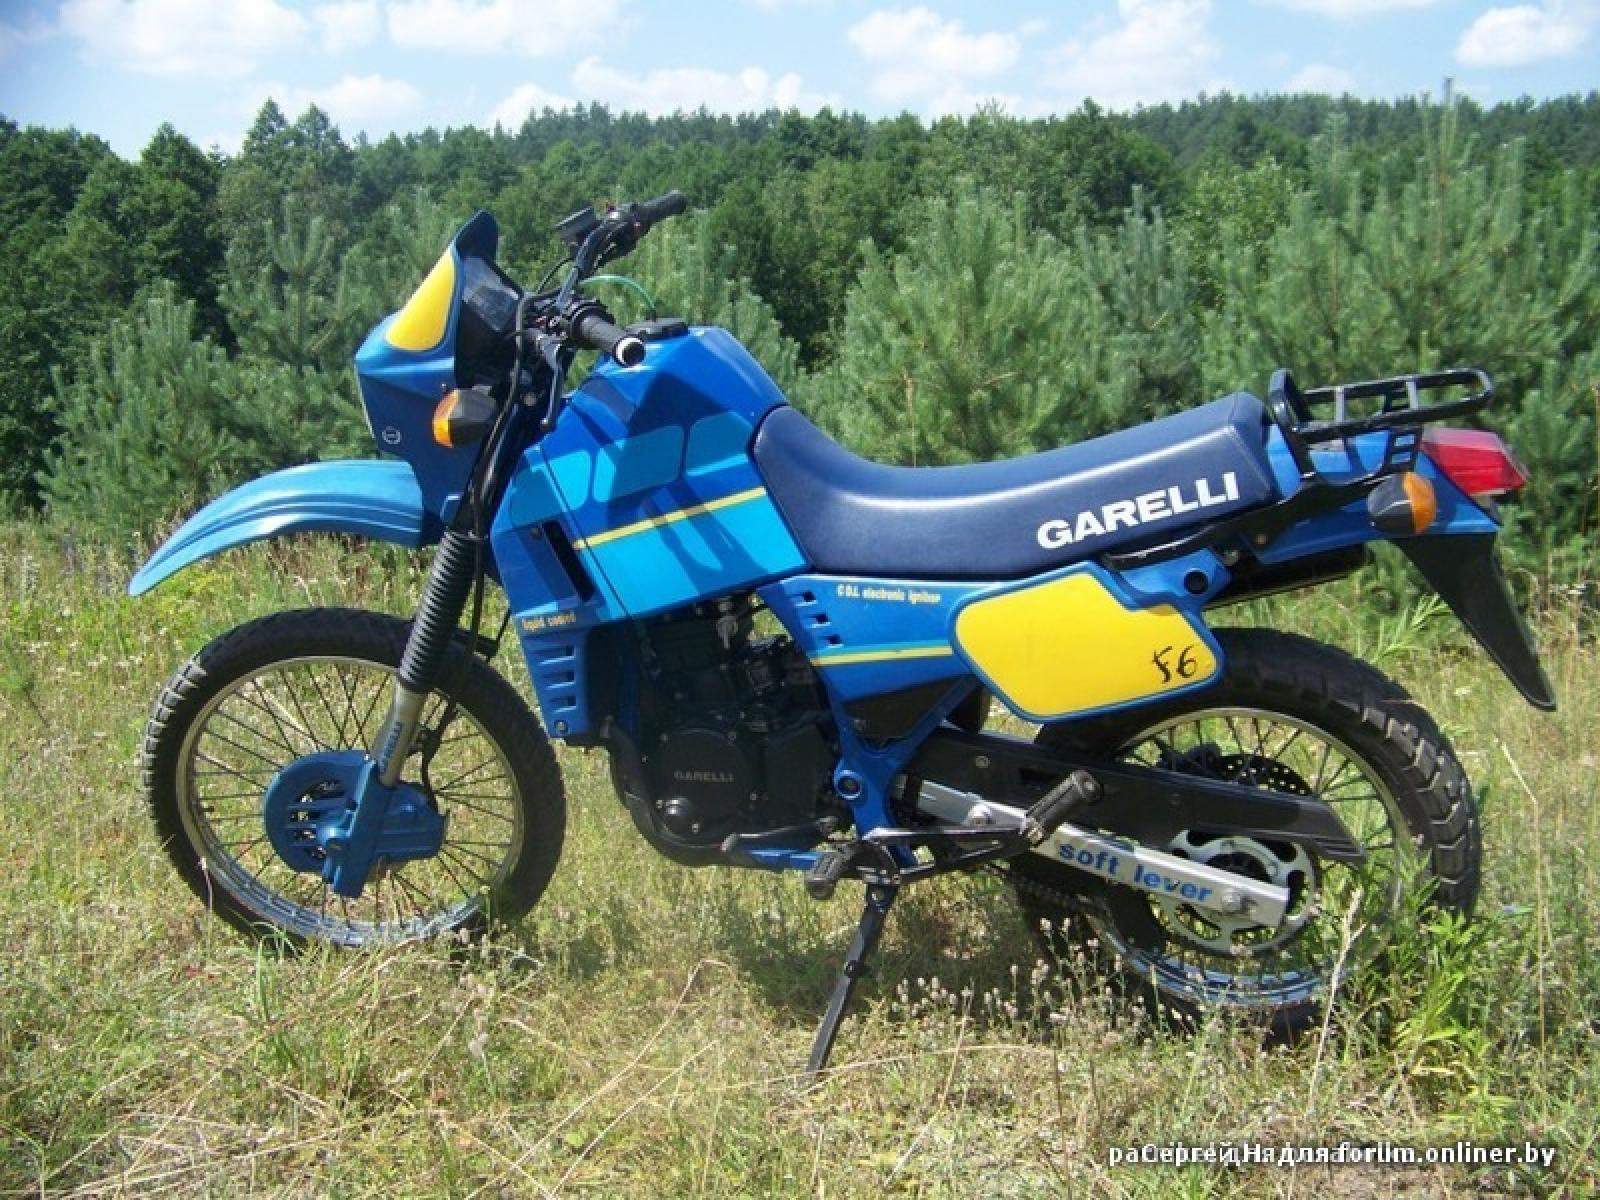 Garelli XR 125 Tiger images #153972